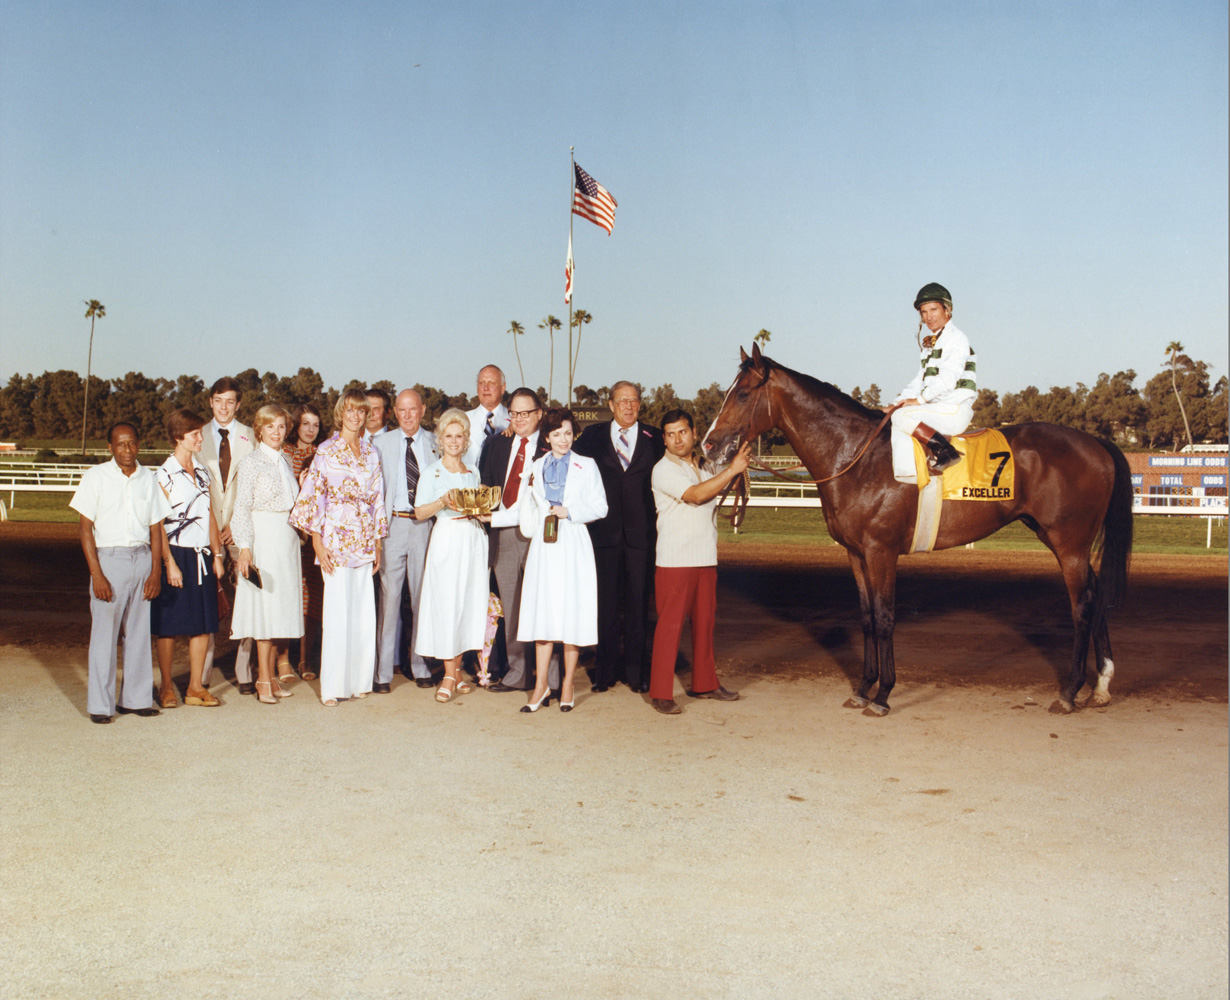 Winner's circle photograph for the 1978 Hollywood Invitational at Hollywood Park, won by Exceller (Bill Shoemaker up), trained by Charlie Whittingham (Hollywood Park Photo/Museum Collection)